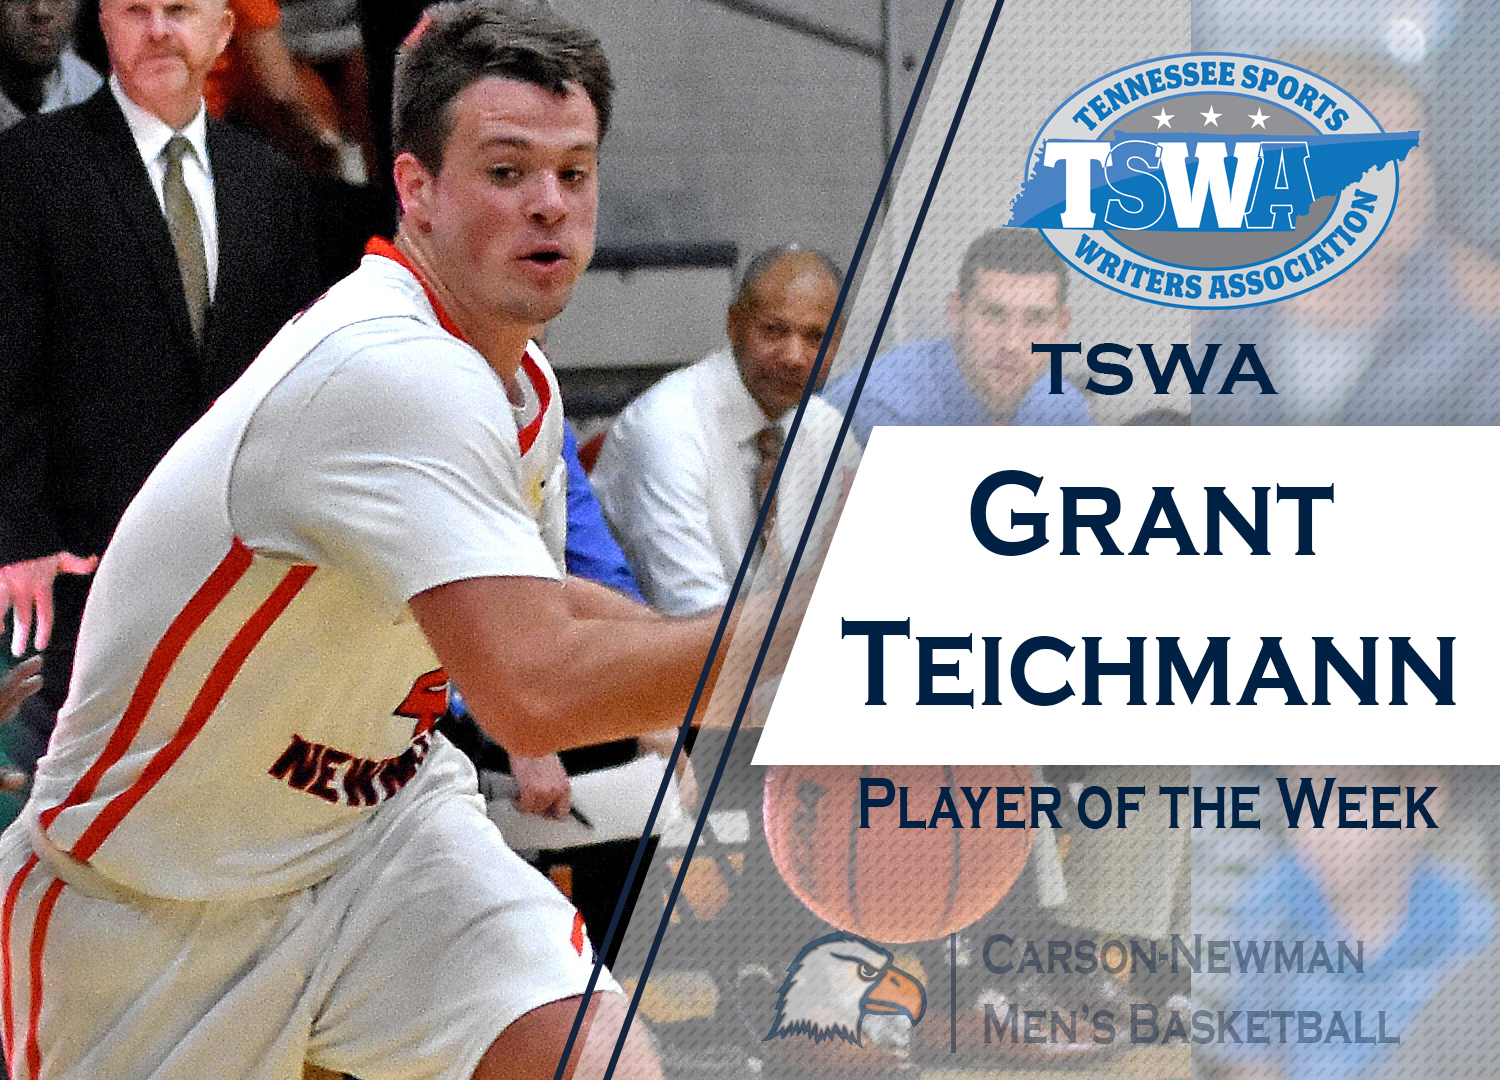 TSWA touts Teichmann as state player of the week